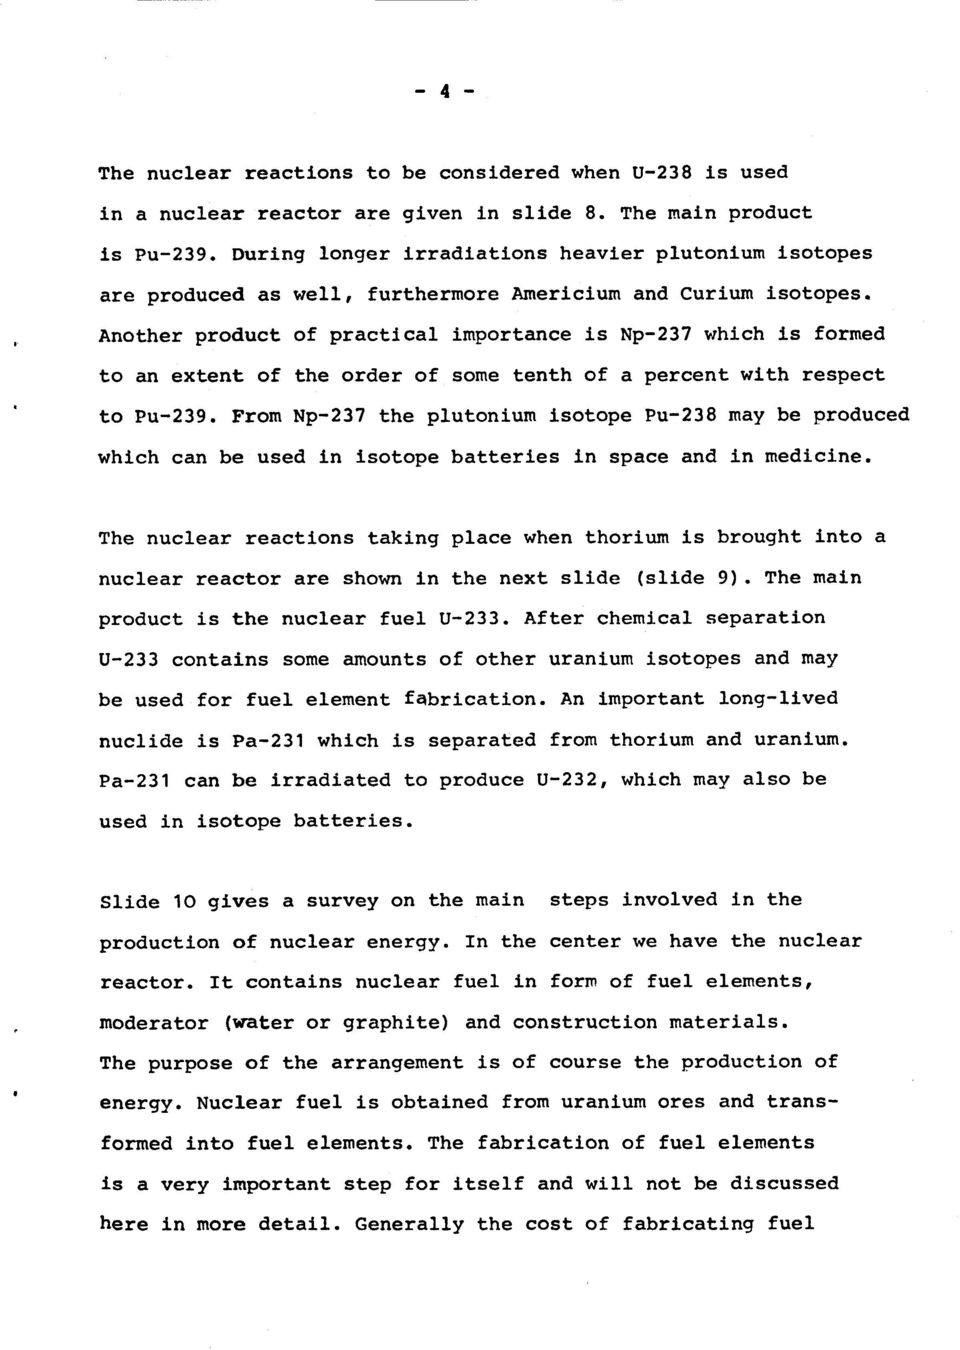 Another product of practlcal importance is Np-237 which ls forrned to an extent of the order of some tenth of a percent wlth respect to Pu-239. From Np-237 the plutonium J.